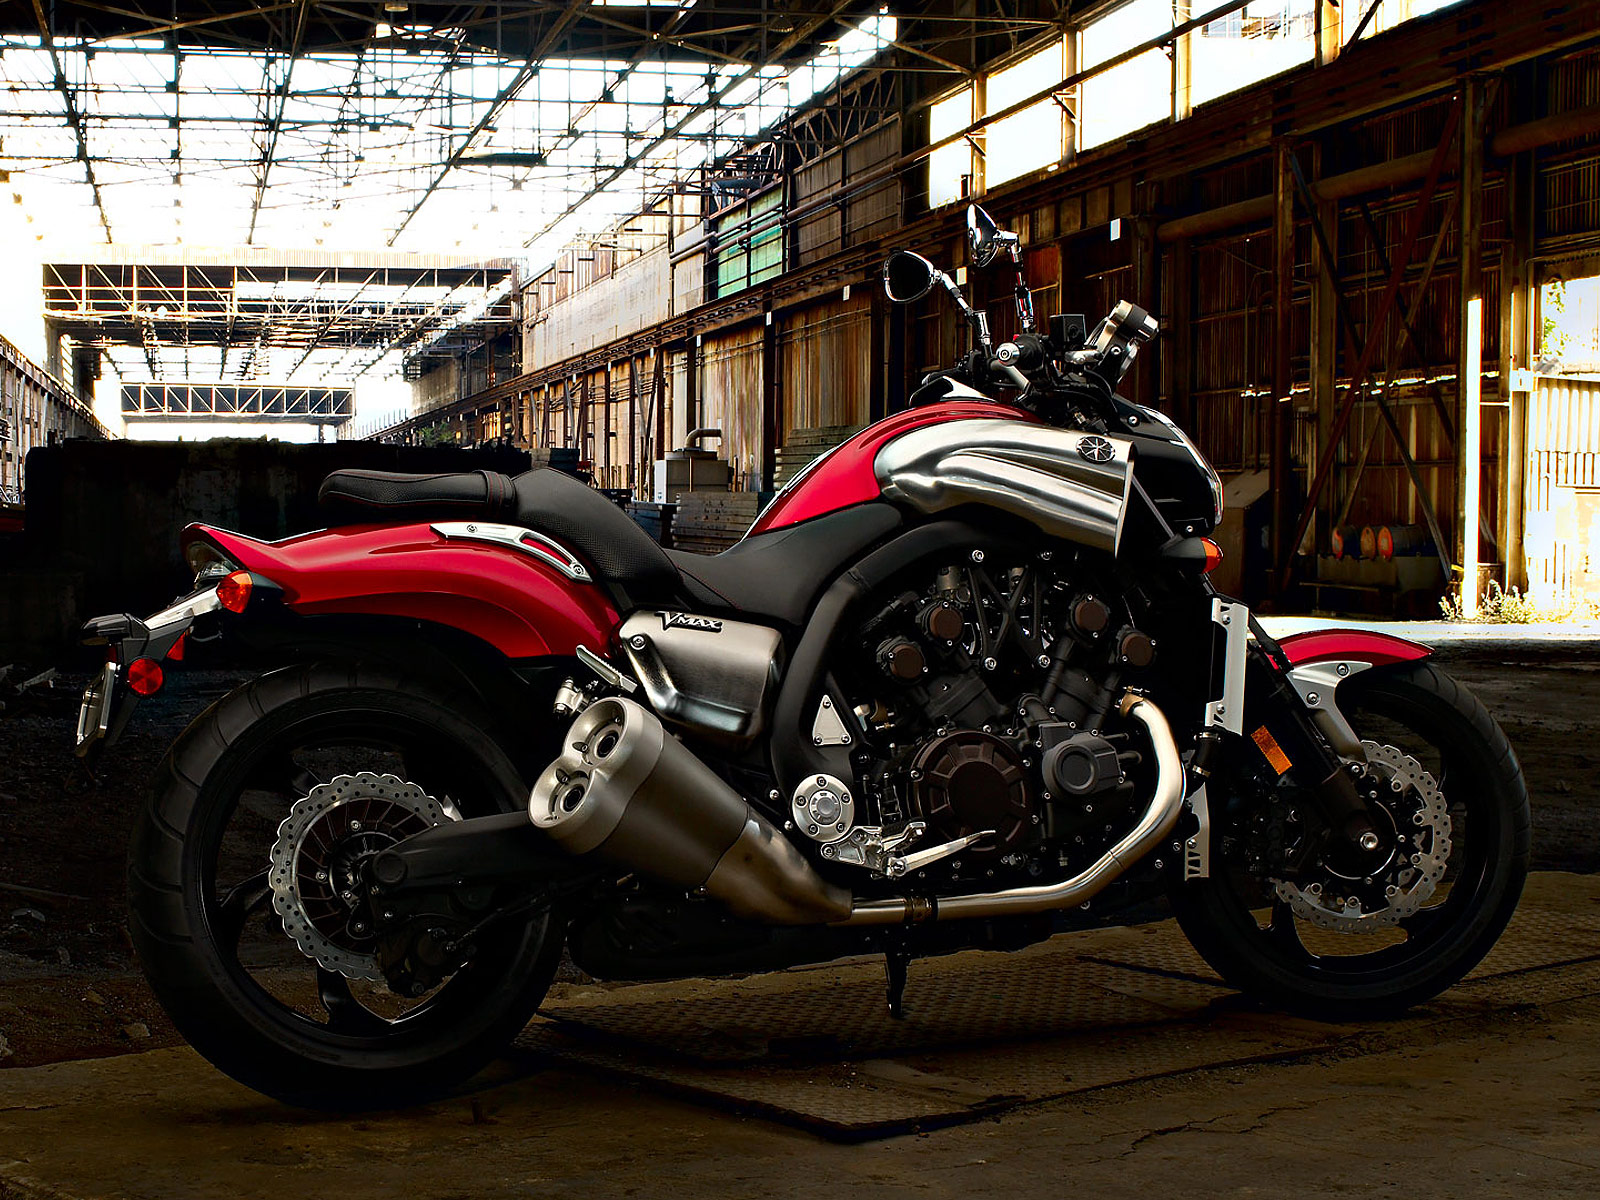 2011 YAMAHA VMAX VMX17 Pictures  Accident Lawyers Info